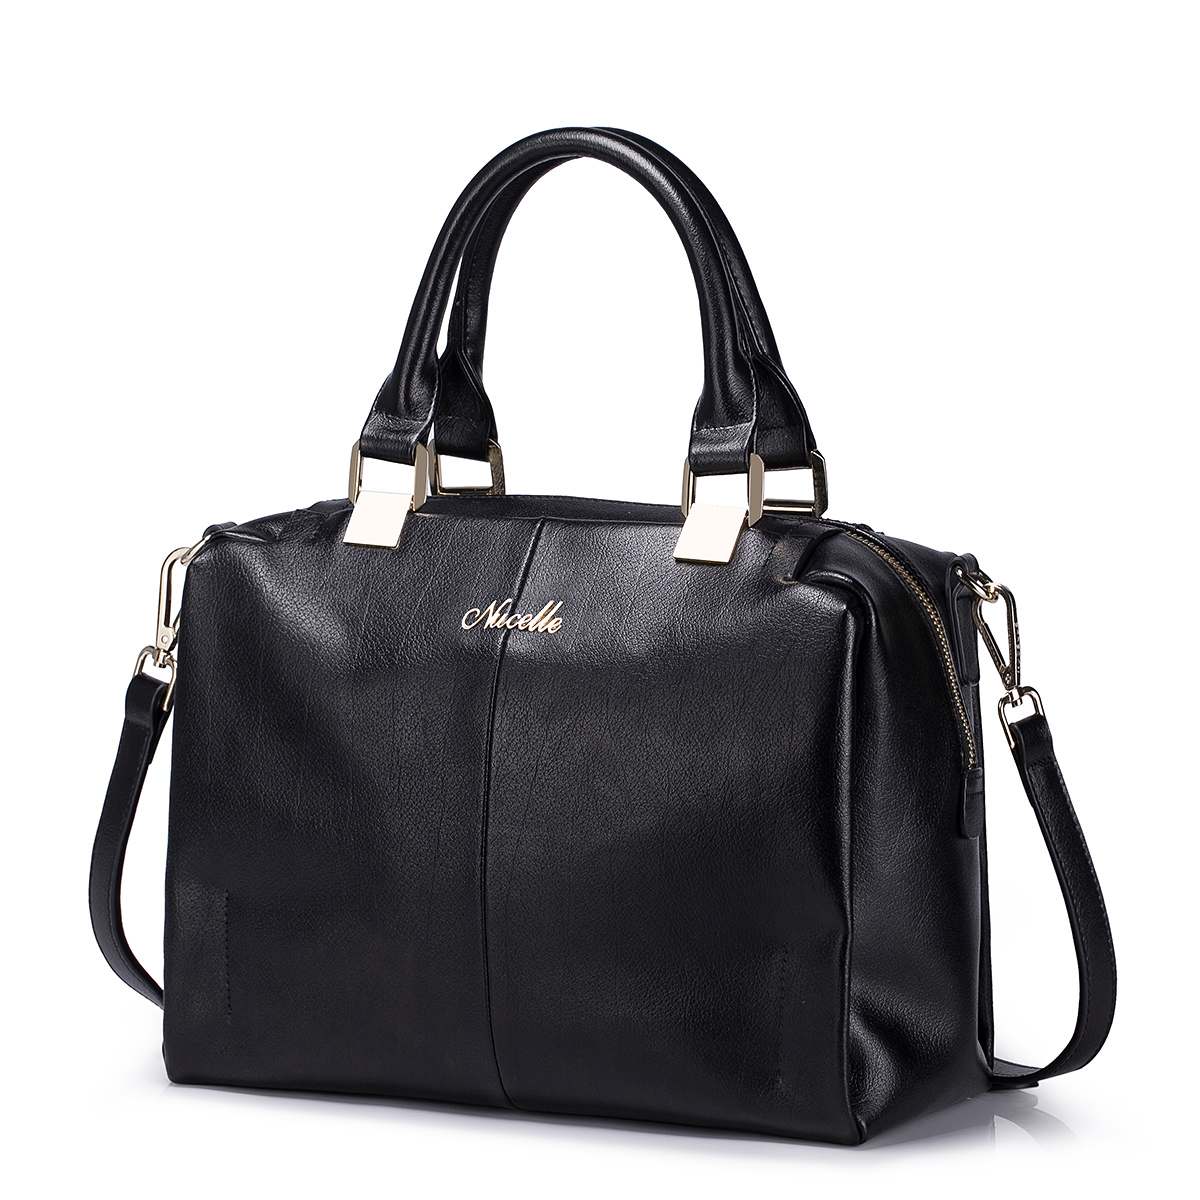 Solid color big size tote bag ladies leather bag black